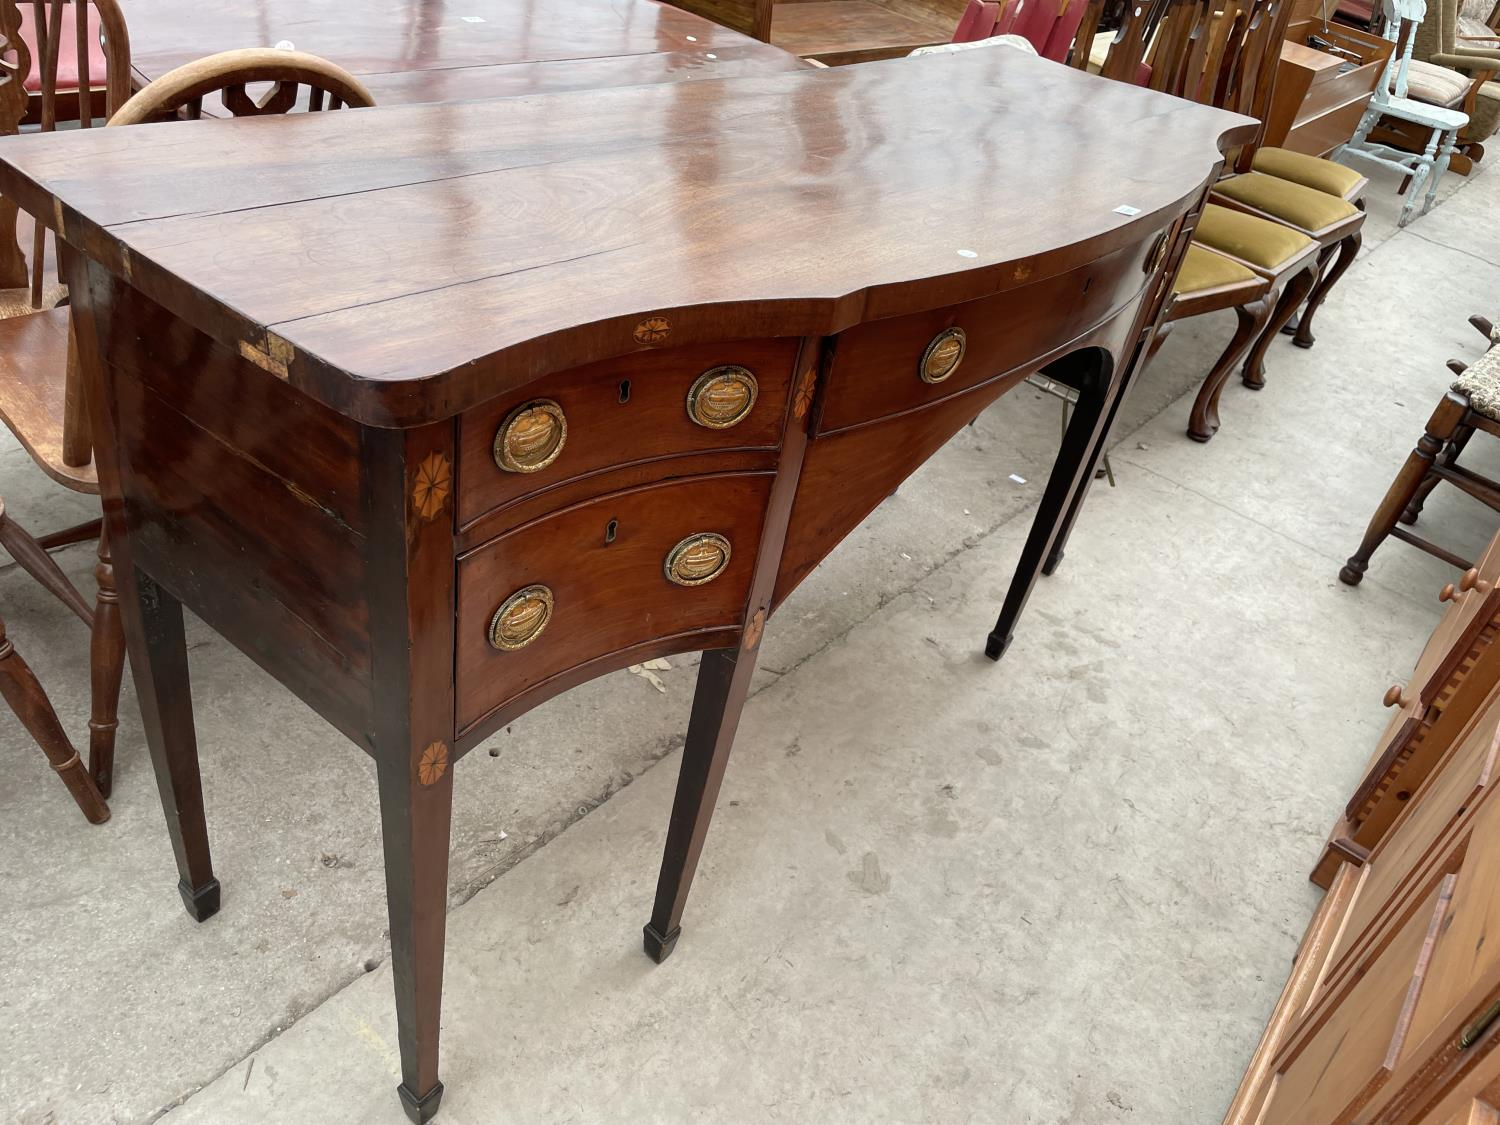 A 19TH CENTURY MAHOGANY AND INLAID SIDEBOARD ENCLOSING FOUR DRAWERS, ON TAPERED LEGS, WITH SPADE